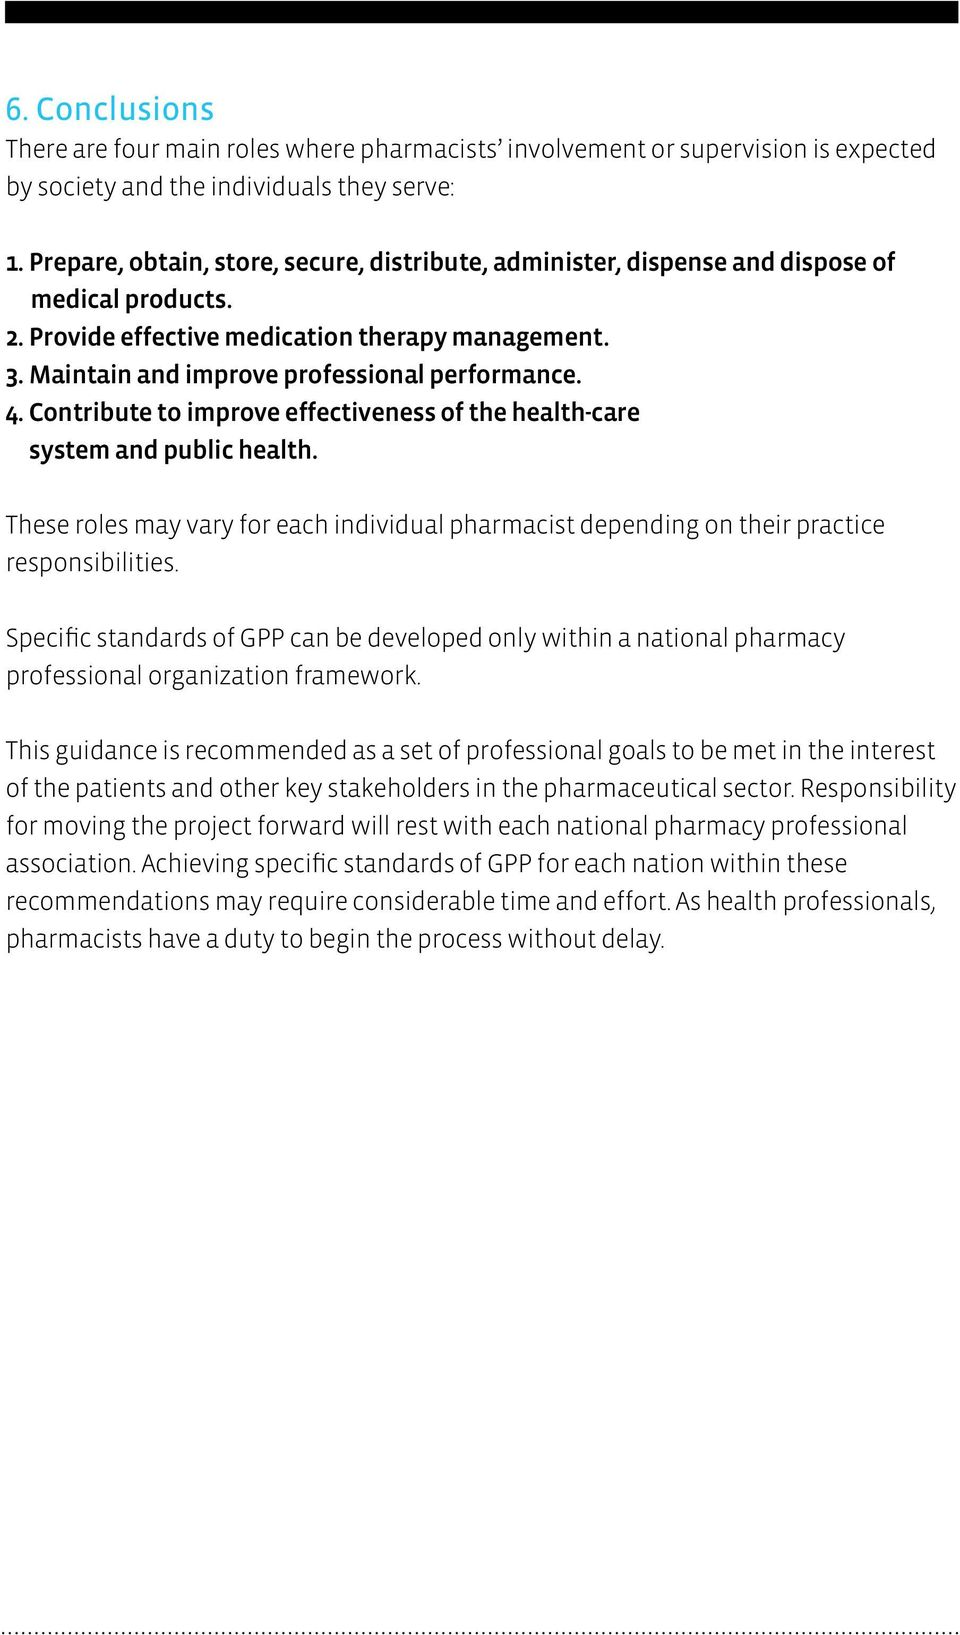 4. Contribute to improve effectiveness of the health-care system and public health. These roles may vary for each individual pharmacist depending on their practice responsibilities.